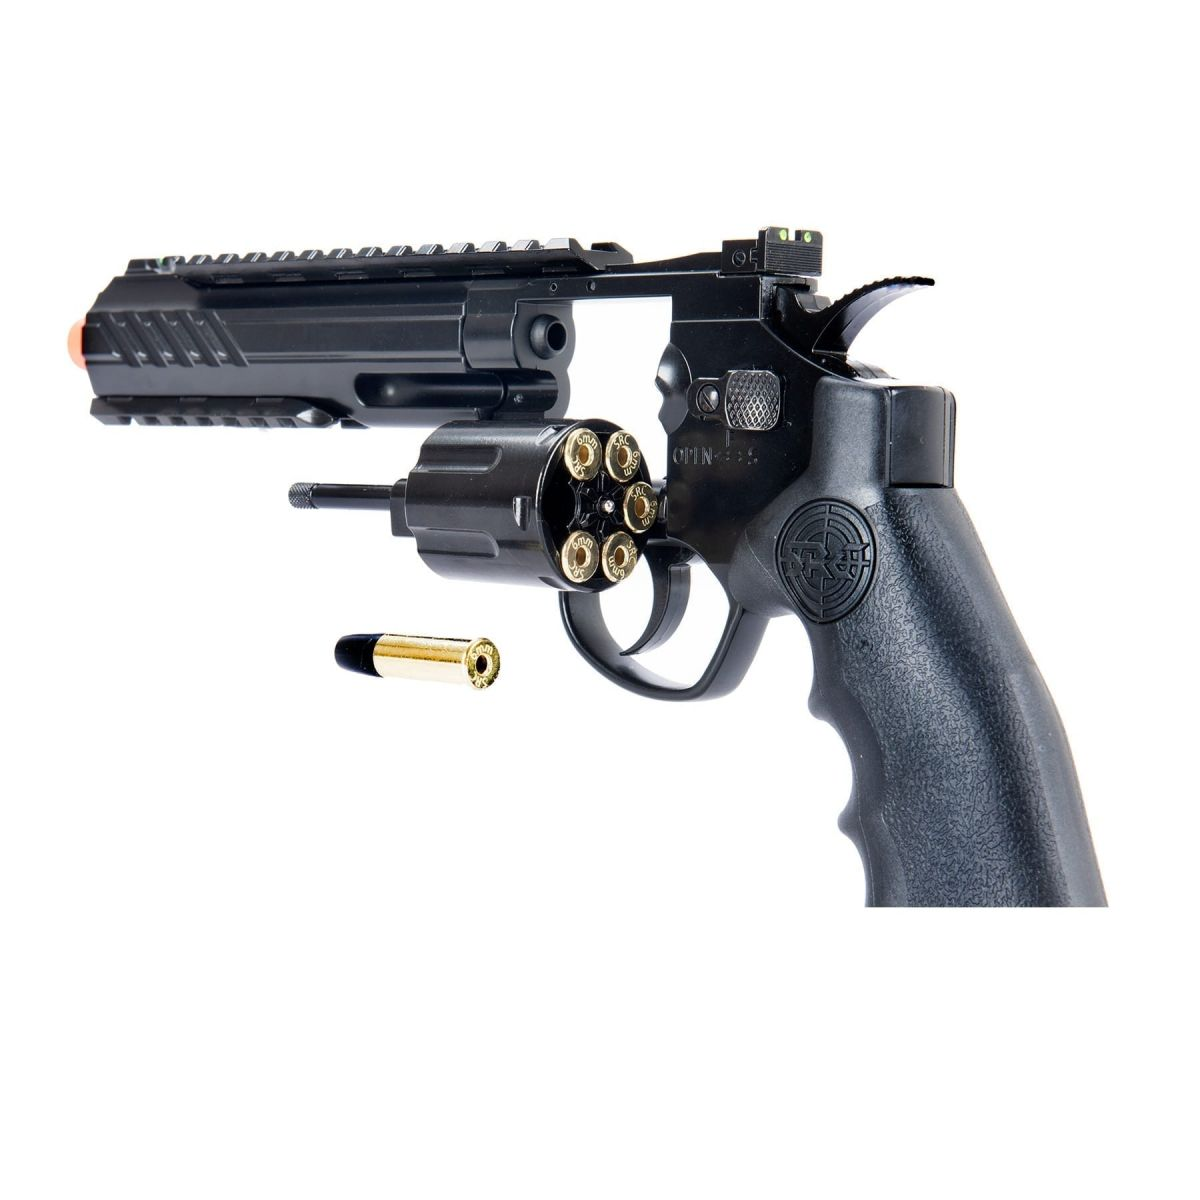 SRC 6 INCH TITAN FULL METAL CO2 AIRSOFT REVOLVER shell